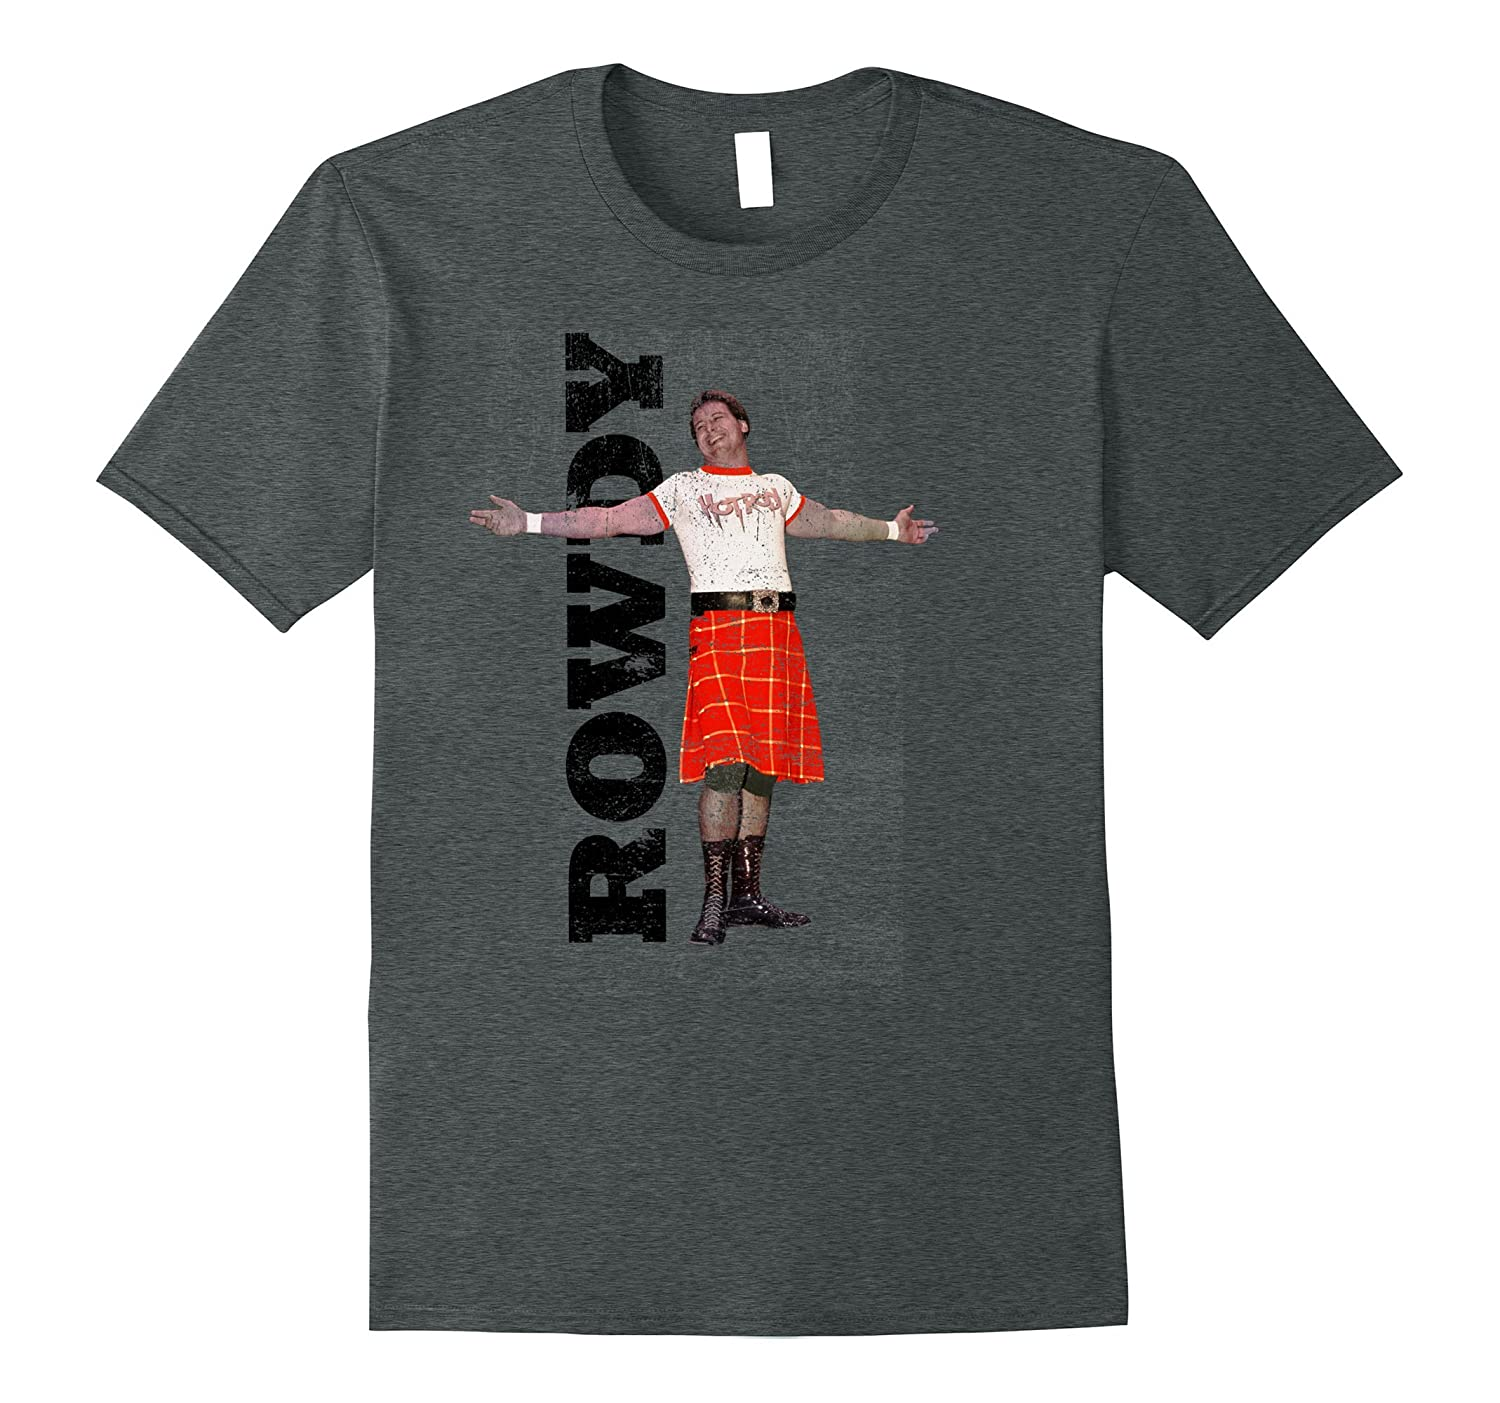 WWE Rowdy Roddy Piper Vintage Distressed T-Shirt-ah my shirt one gift